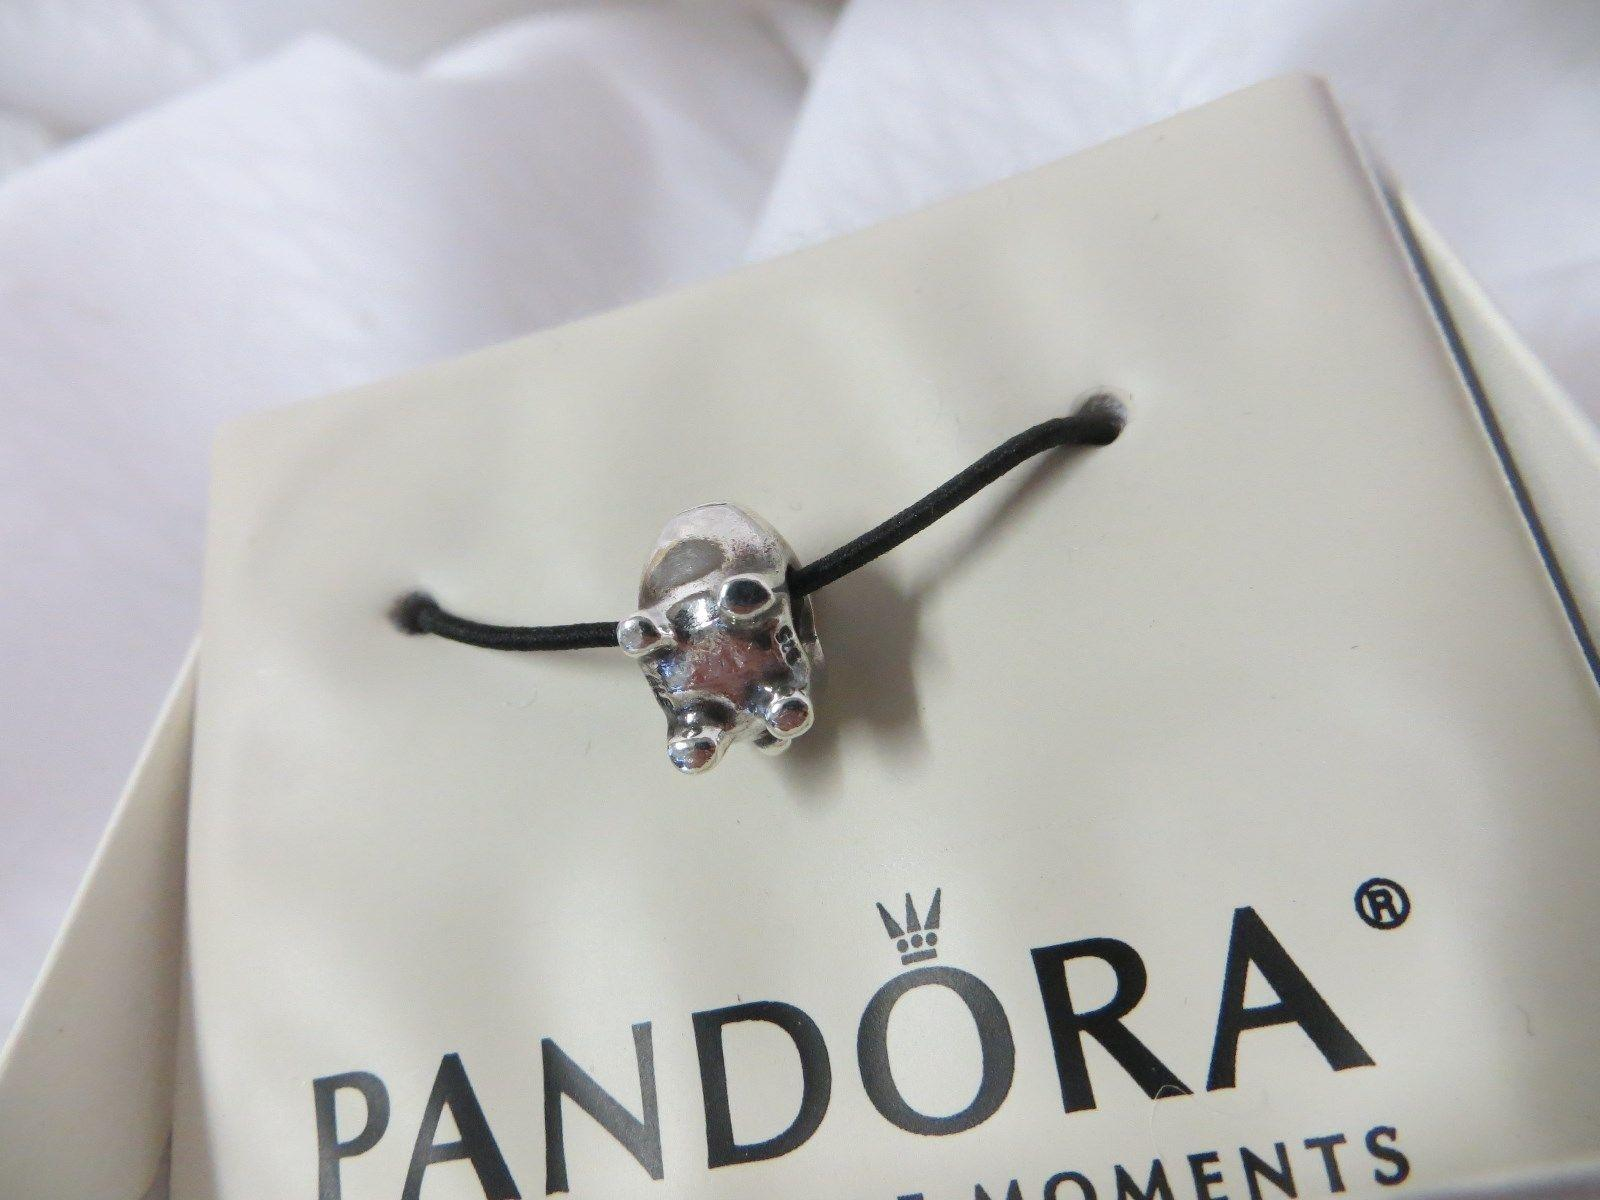 a8d520187 ... cheap pandora authentic pandora see spot run dog charm 790258 retired.  123456 c087a 9179e